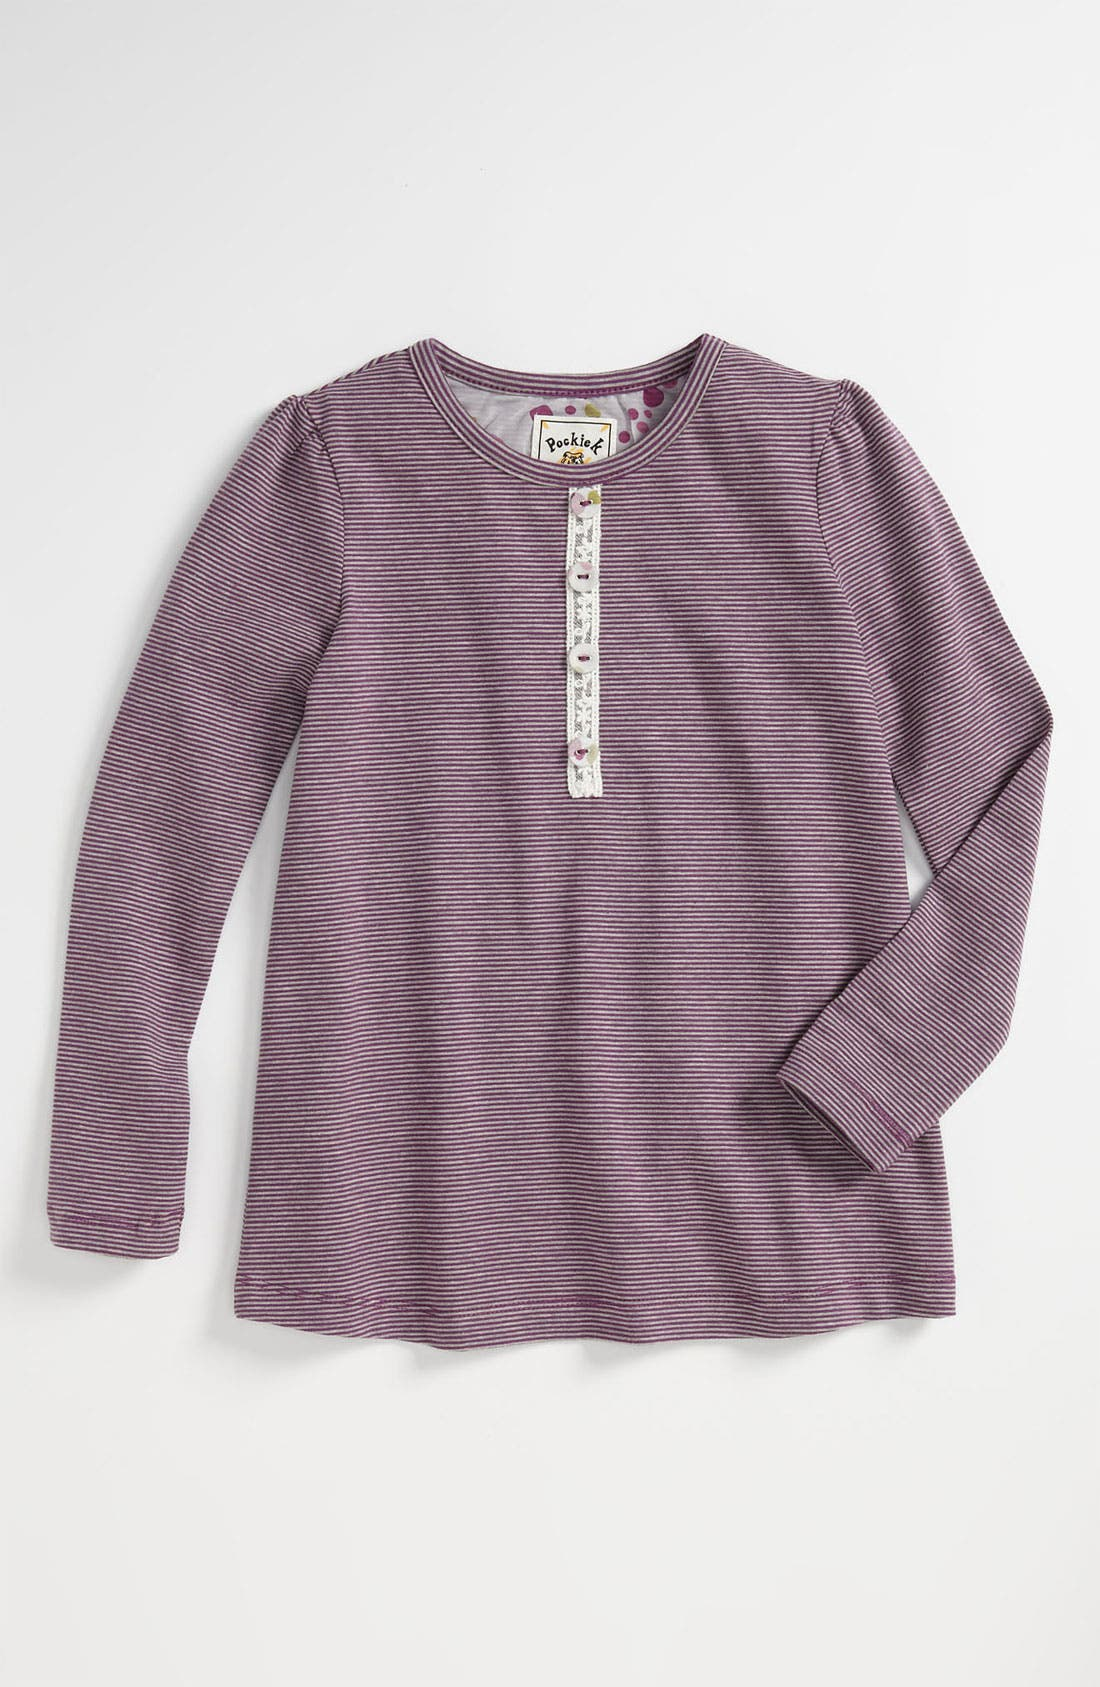 Main Image - Pockie K Tunic (Little Girls)